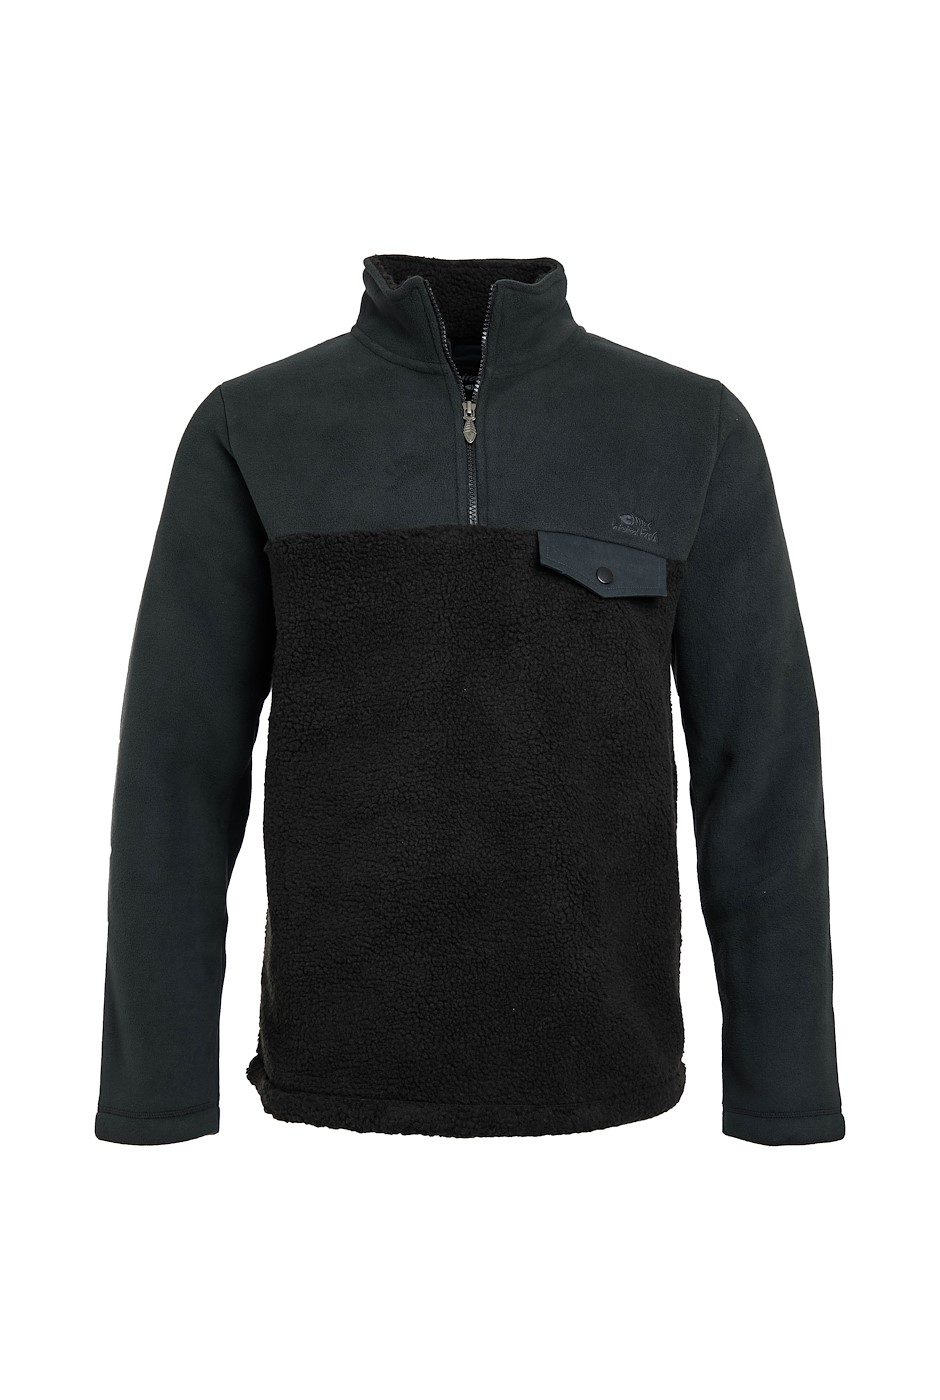 Atmore Recycled 1/4 Zip Panelled Borg Fleece Washed Black